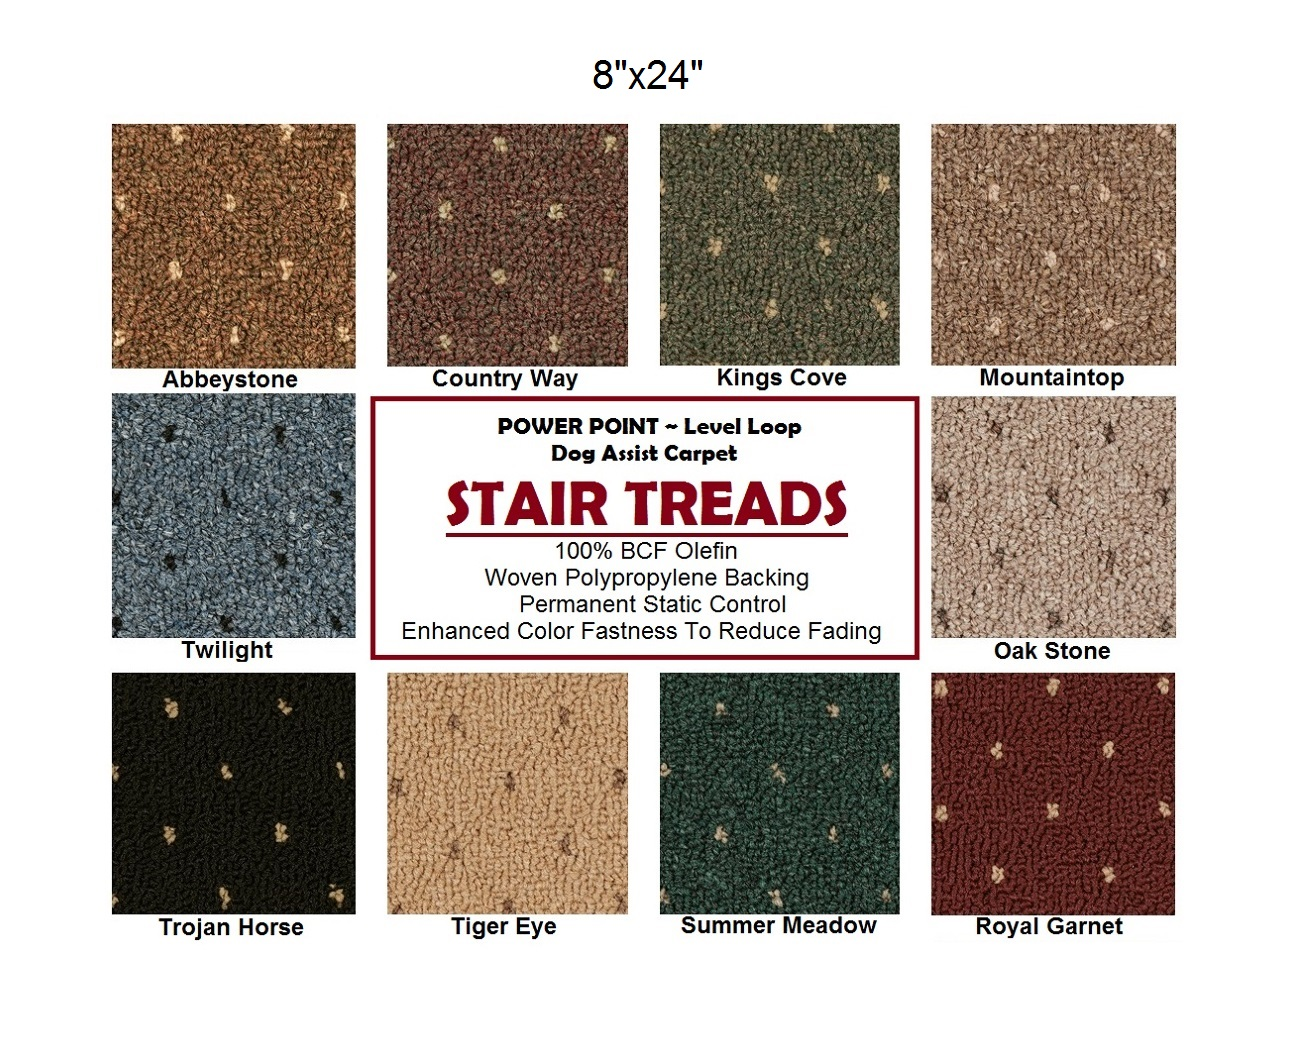 Power Point DOG ASSIST Carpet Stair Treads